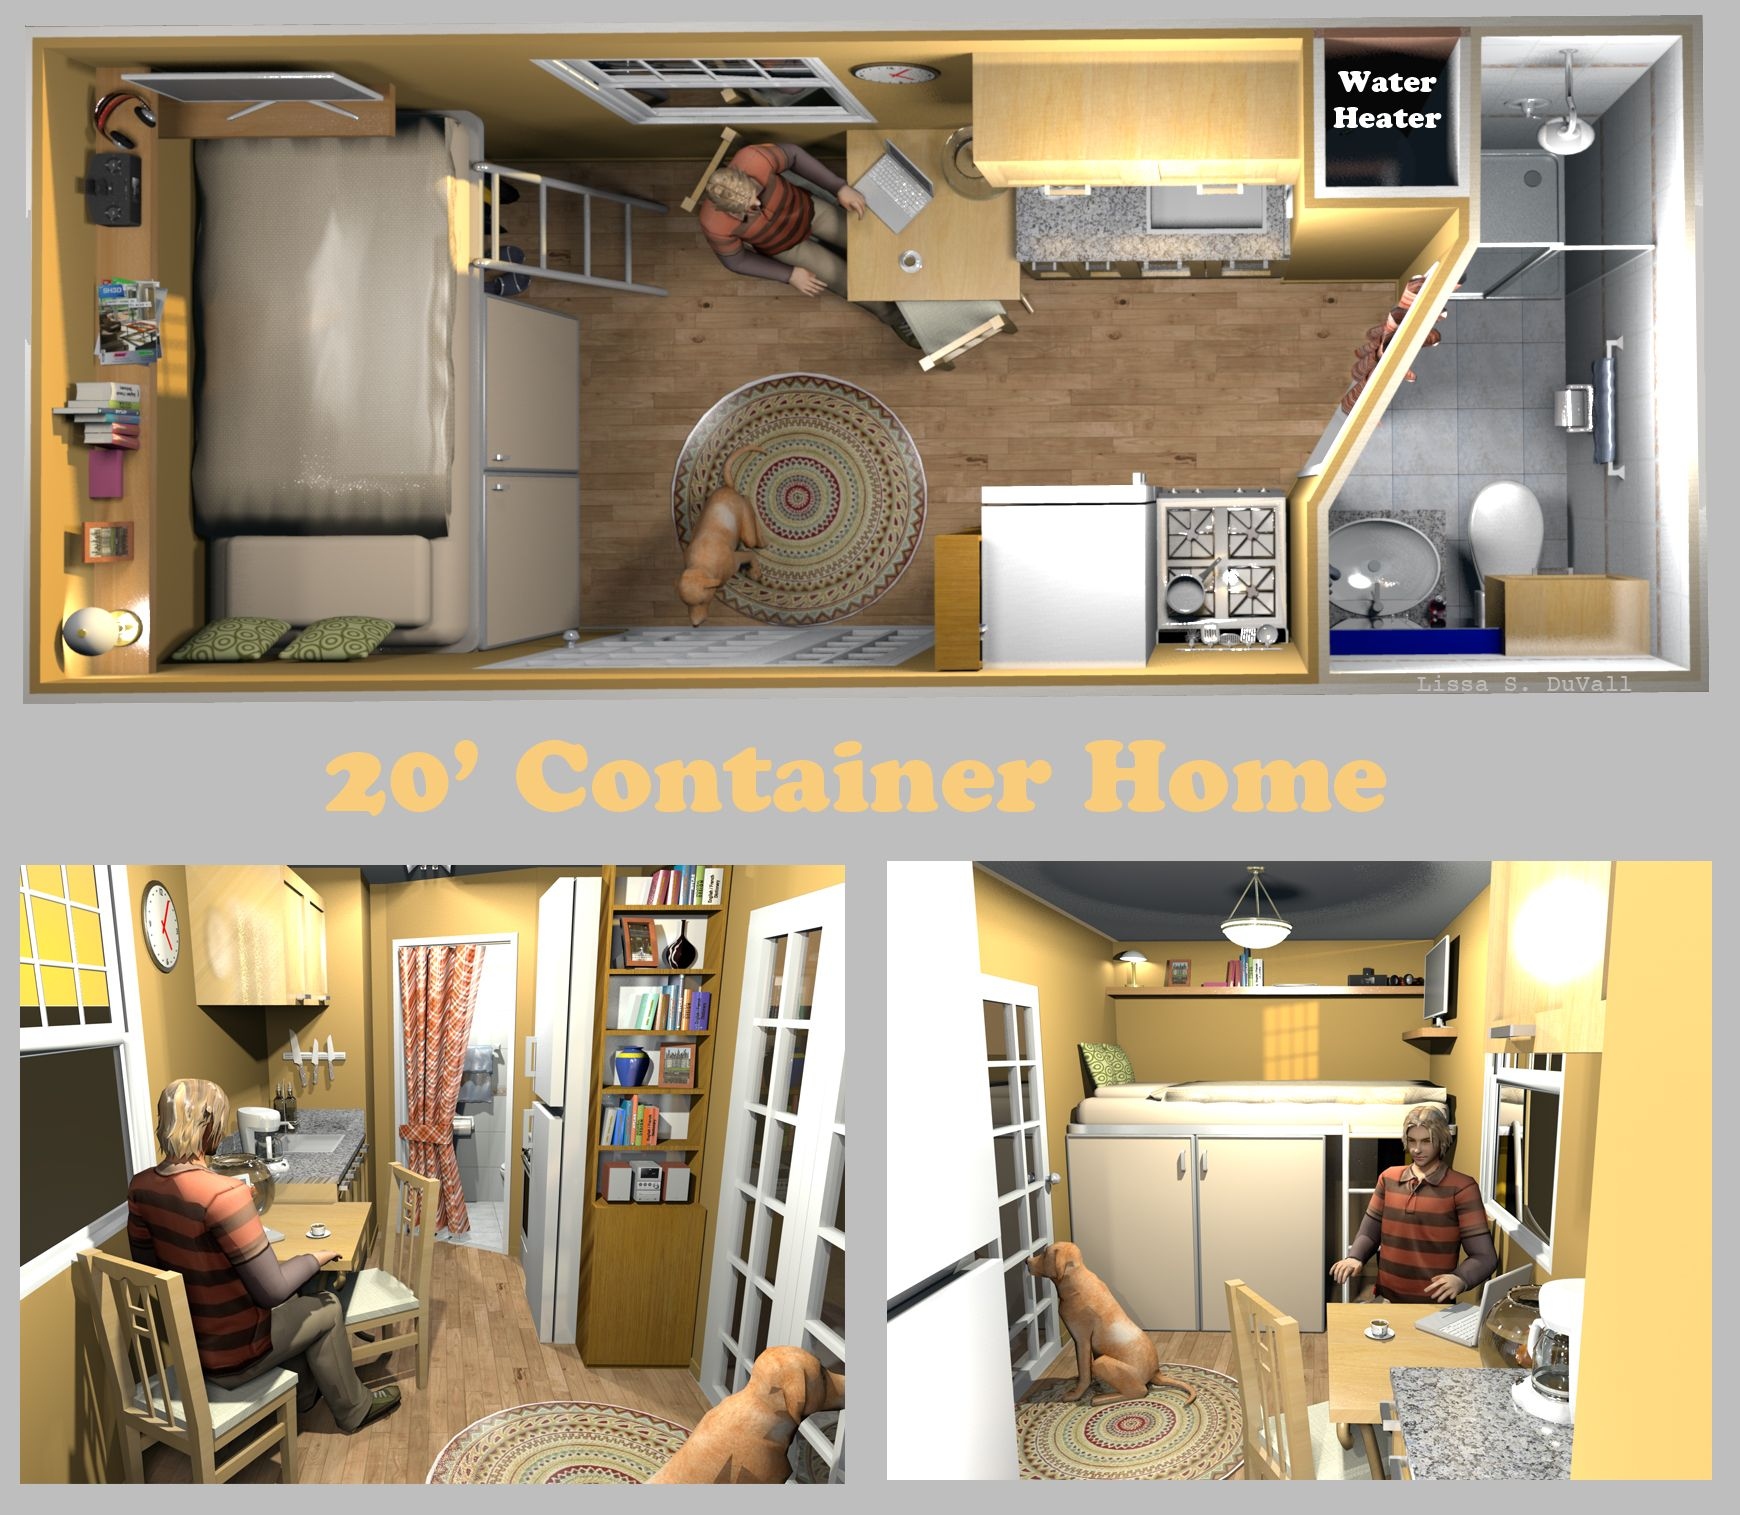 A Very Space Efficient Floor Plan For A Container Home Container Tiny House Tiny Home Freight Container House Building A Container Home Portable Tiny Houses